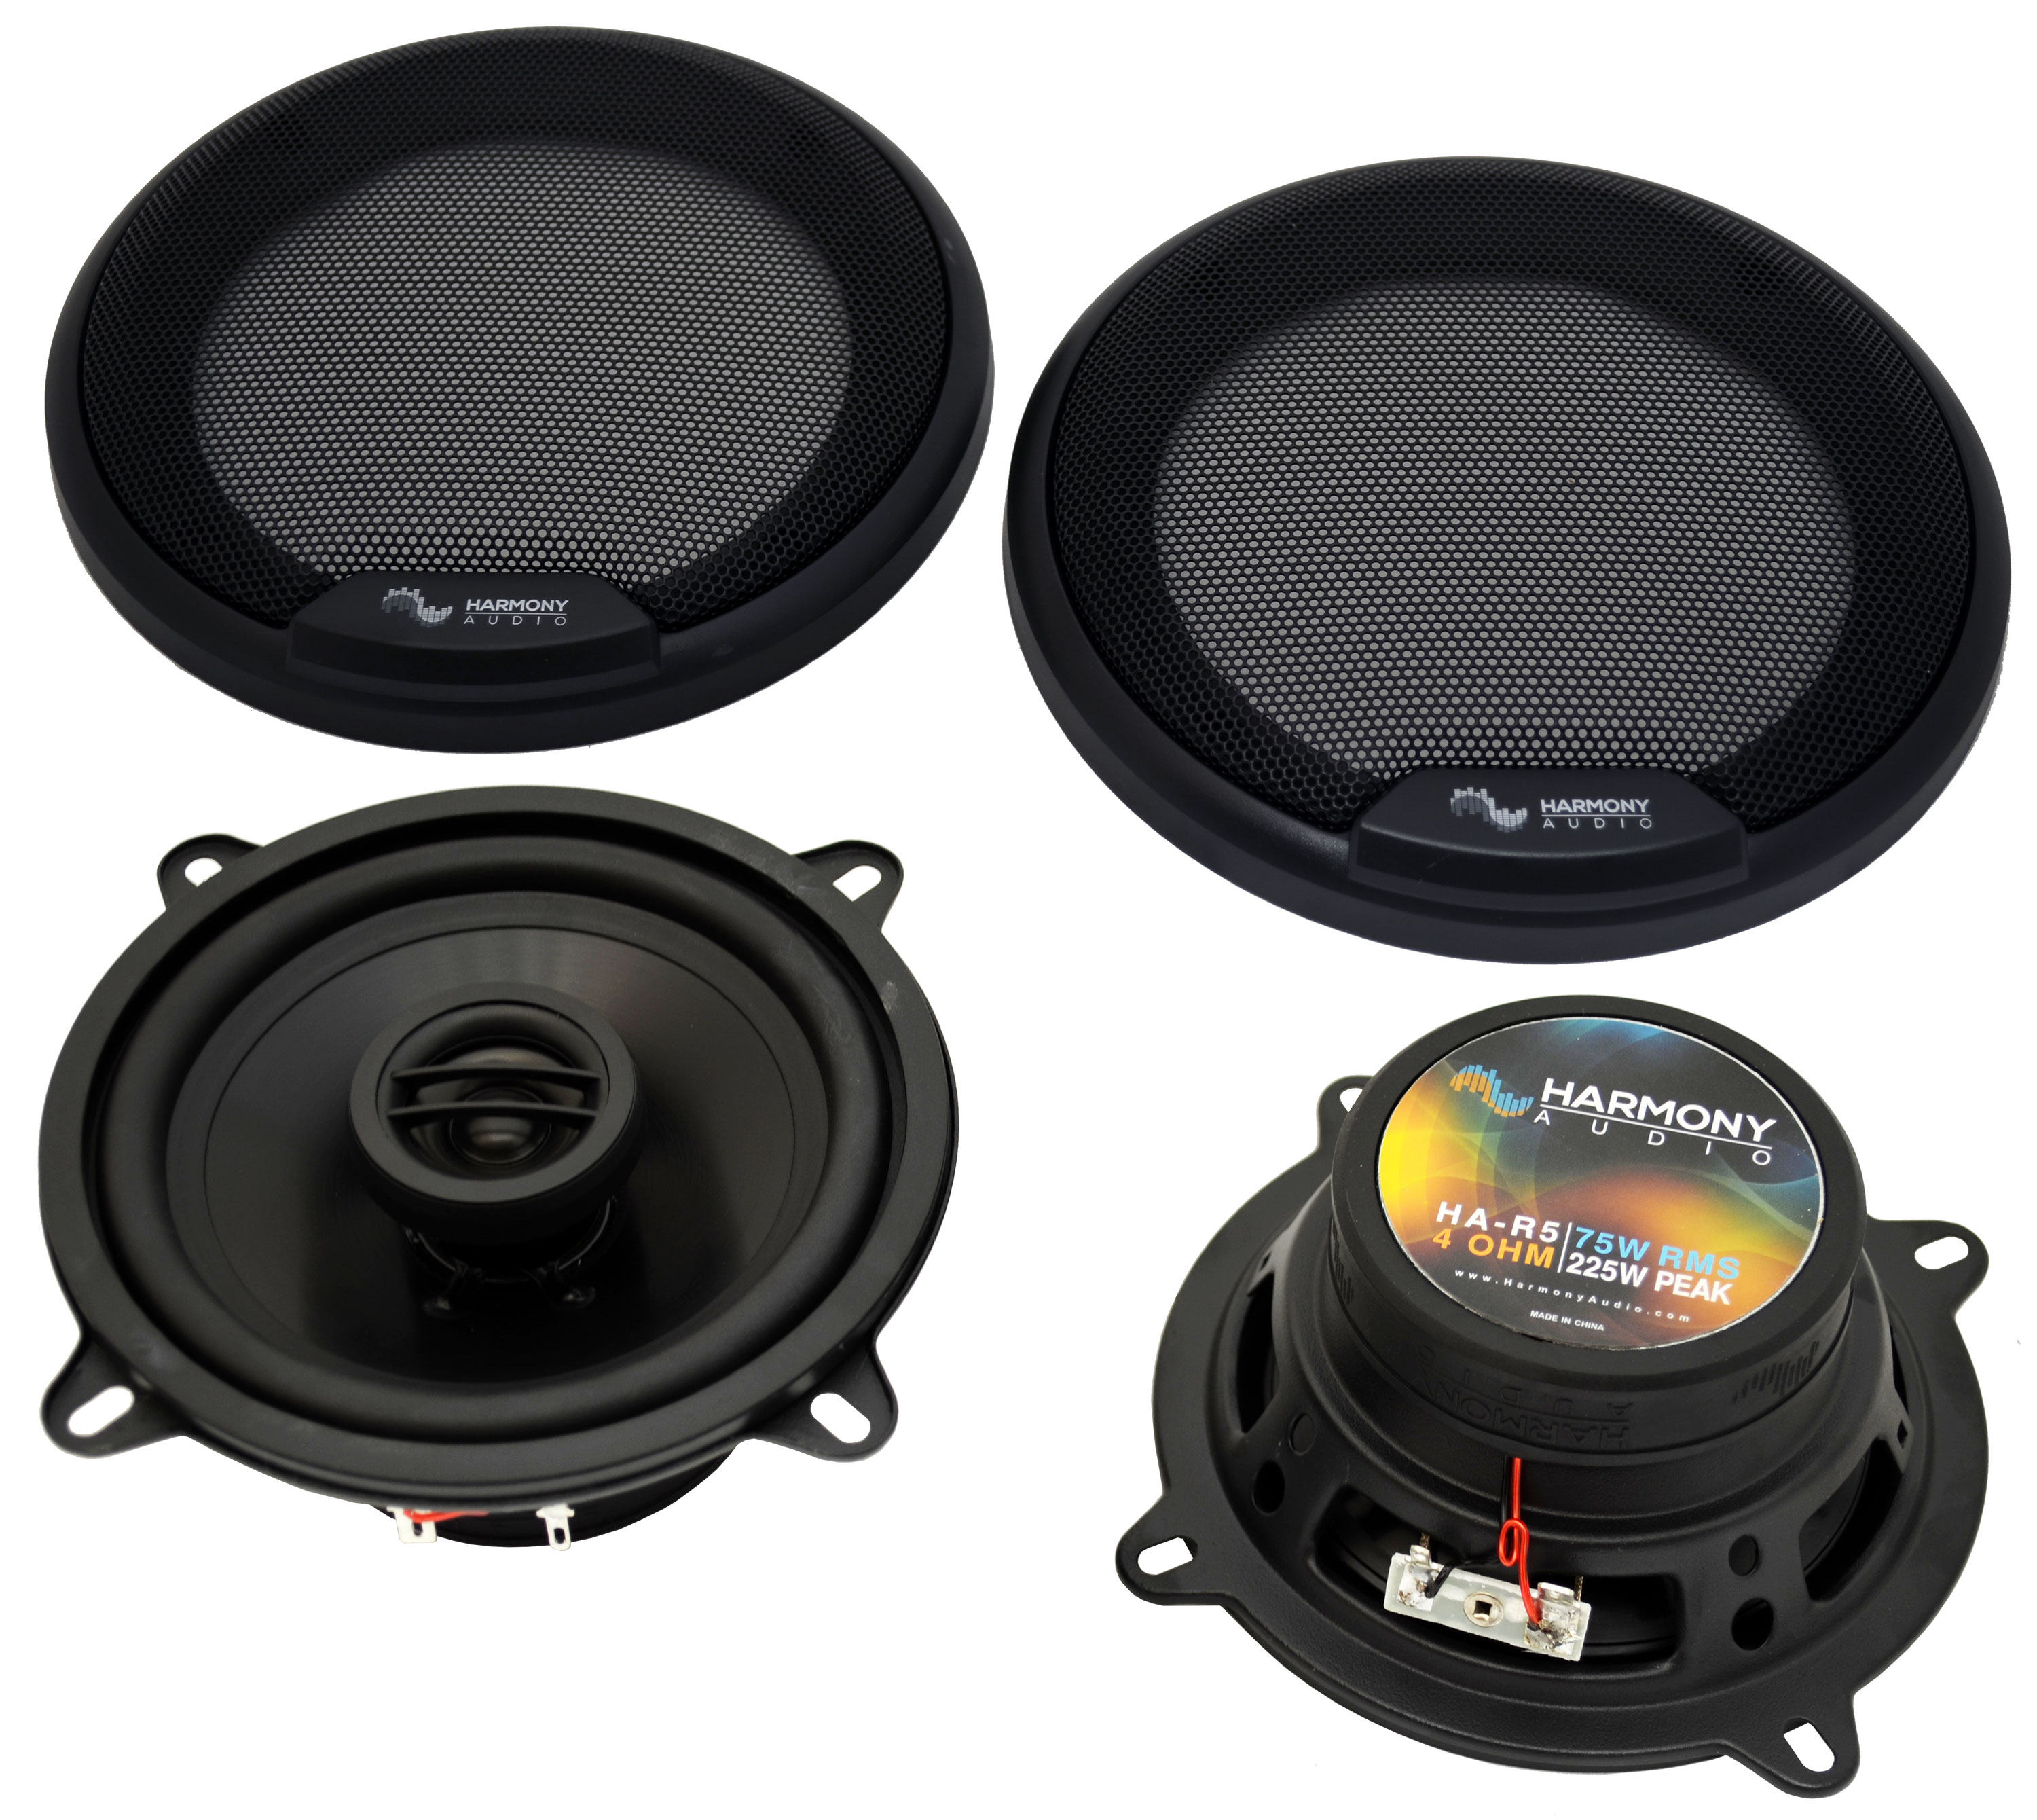 Fits BMW X3 2004-2017 Rear Deck Replacement Speaker Harmony HA-R5 Speakers New